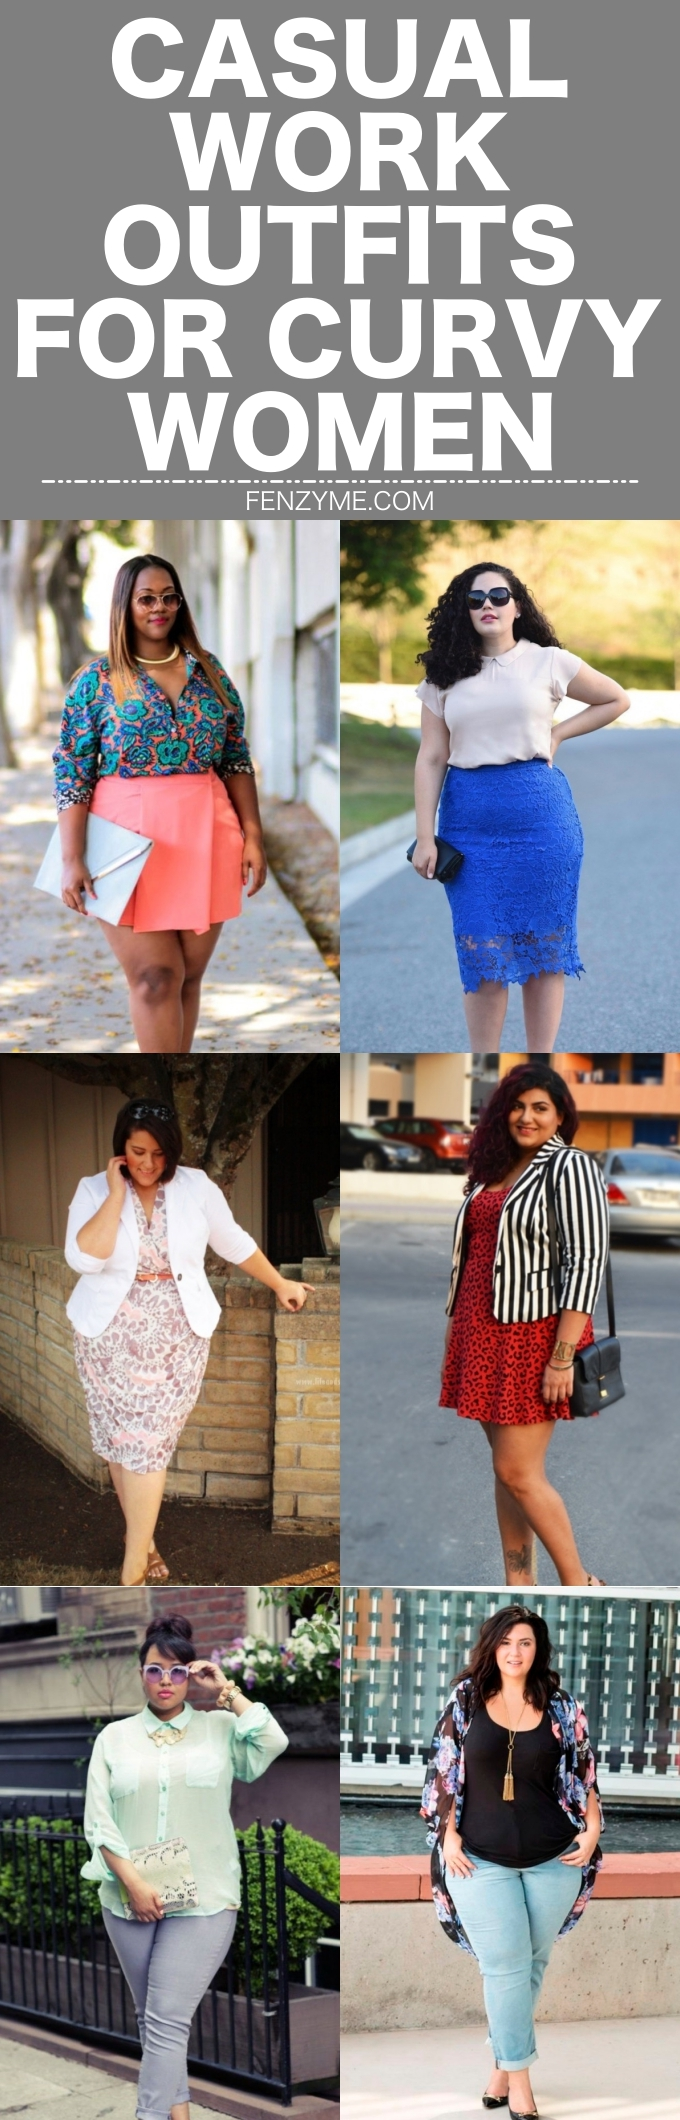 Casual Work Outfits for Curvy Women